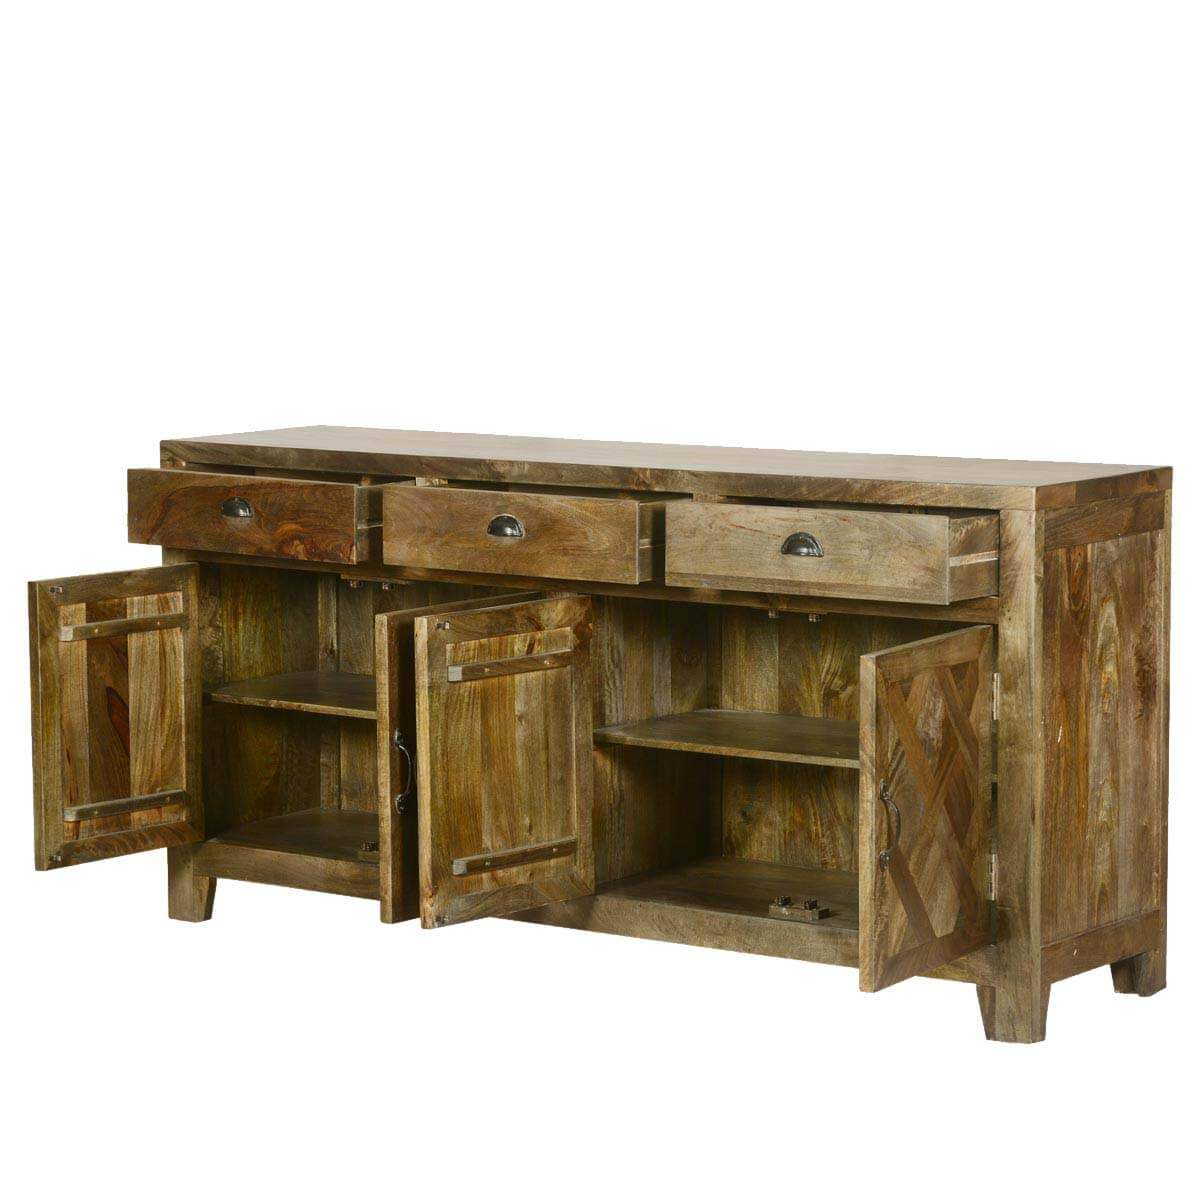 Parquet Farmhouse Mango Wood Rustic Sideboard Buffet Cabinet. Full resolution‎  file, nominally Width 1200 Height 1200 pixels, file with #B27219.